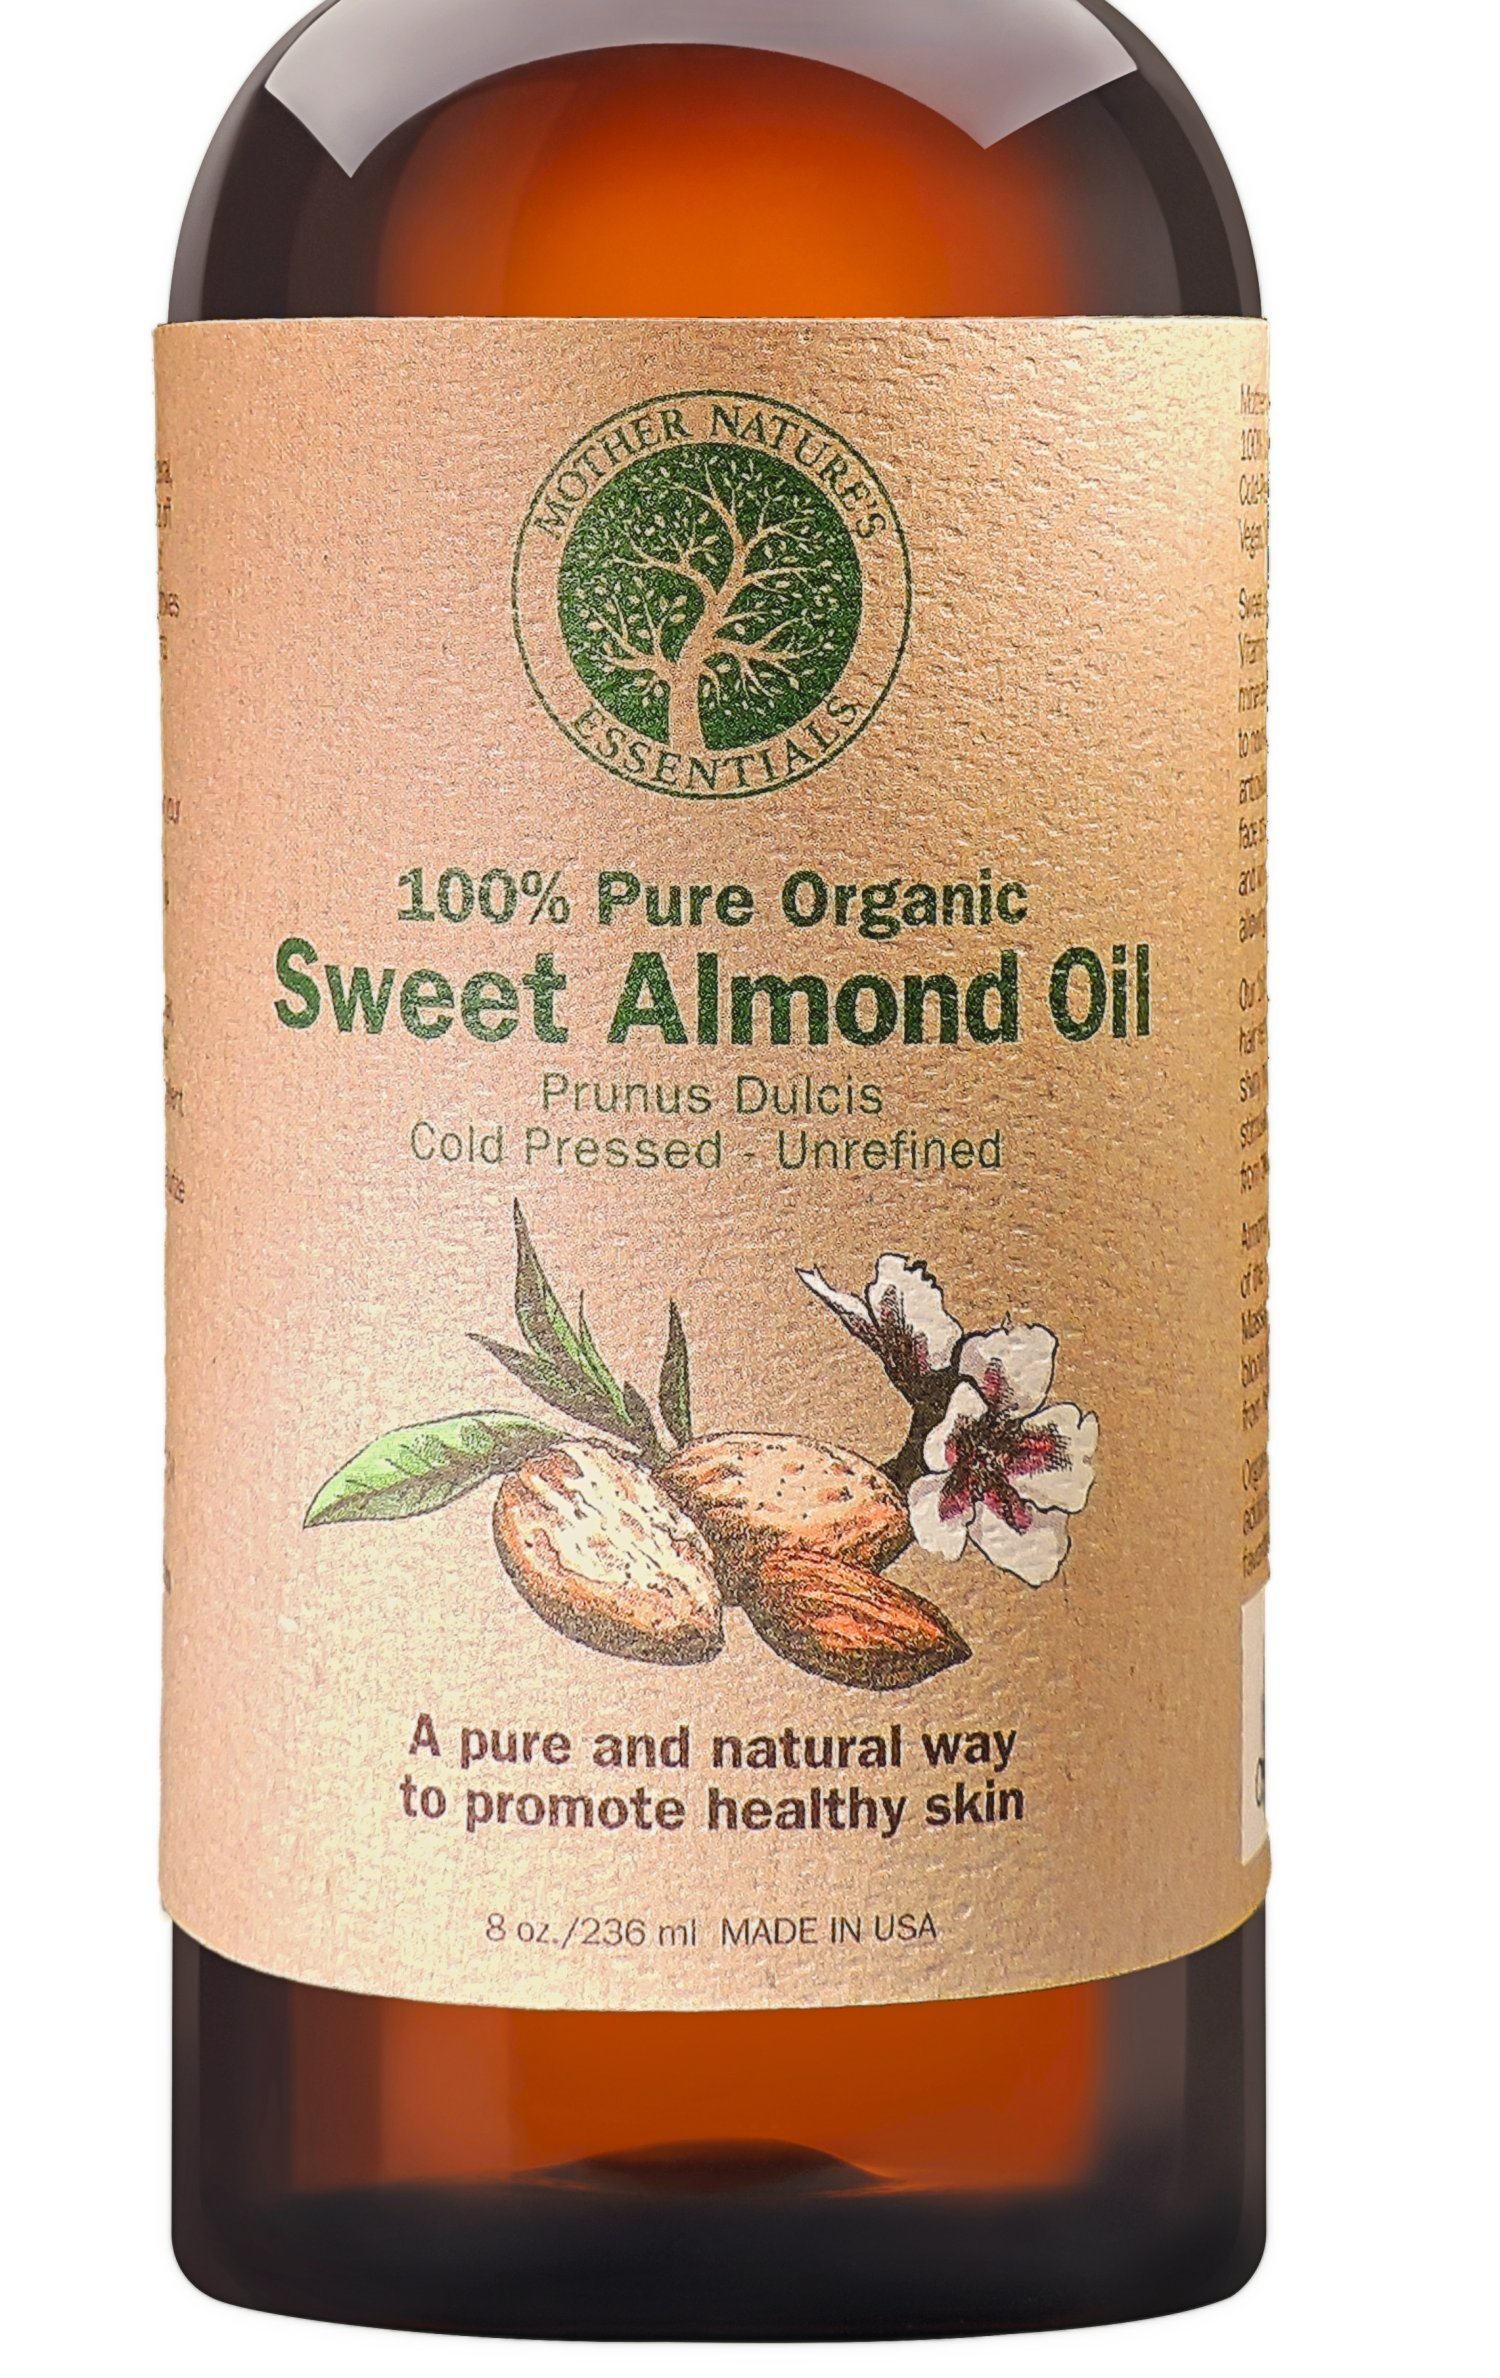 Sweet Almond Oil Organic Highest Quality, Cold Pressed Hexane Free Sweet Almond Oil from Spain. Non-GMO. Perfect Under-Eye Treatment Fighting Dark Circles Full Body Massage Oil. The Best Carrier Oil.